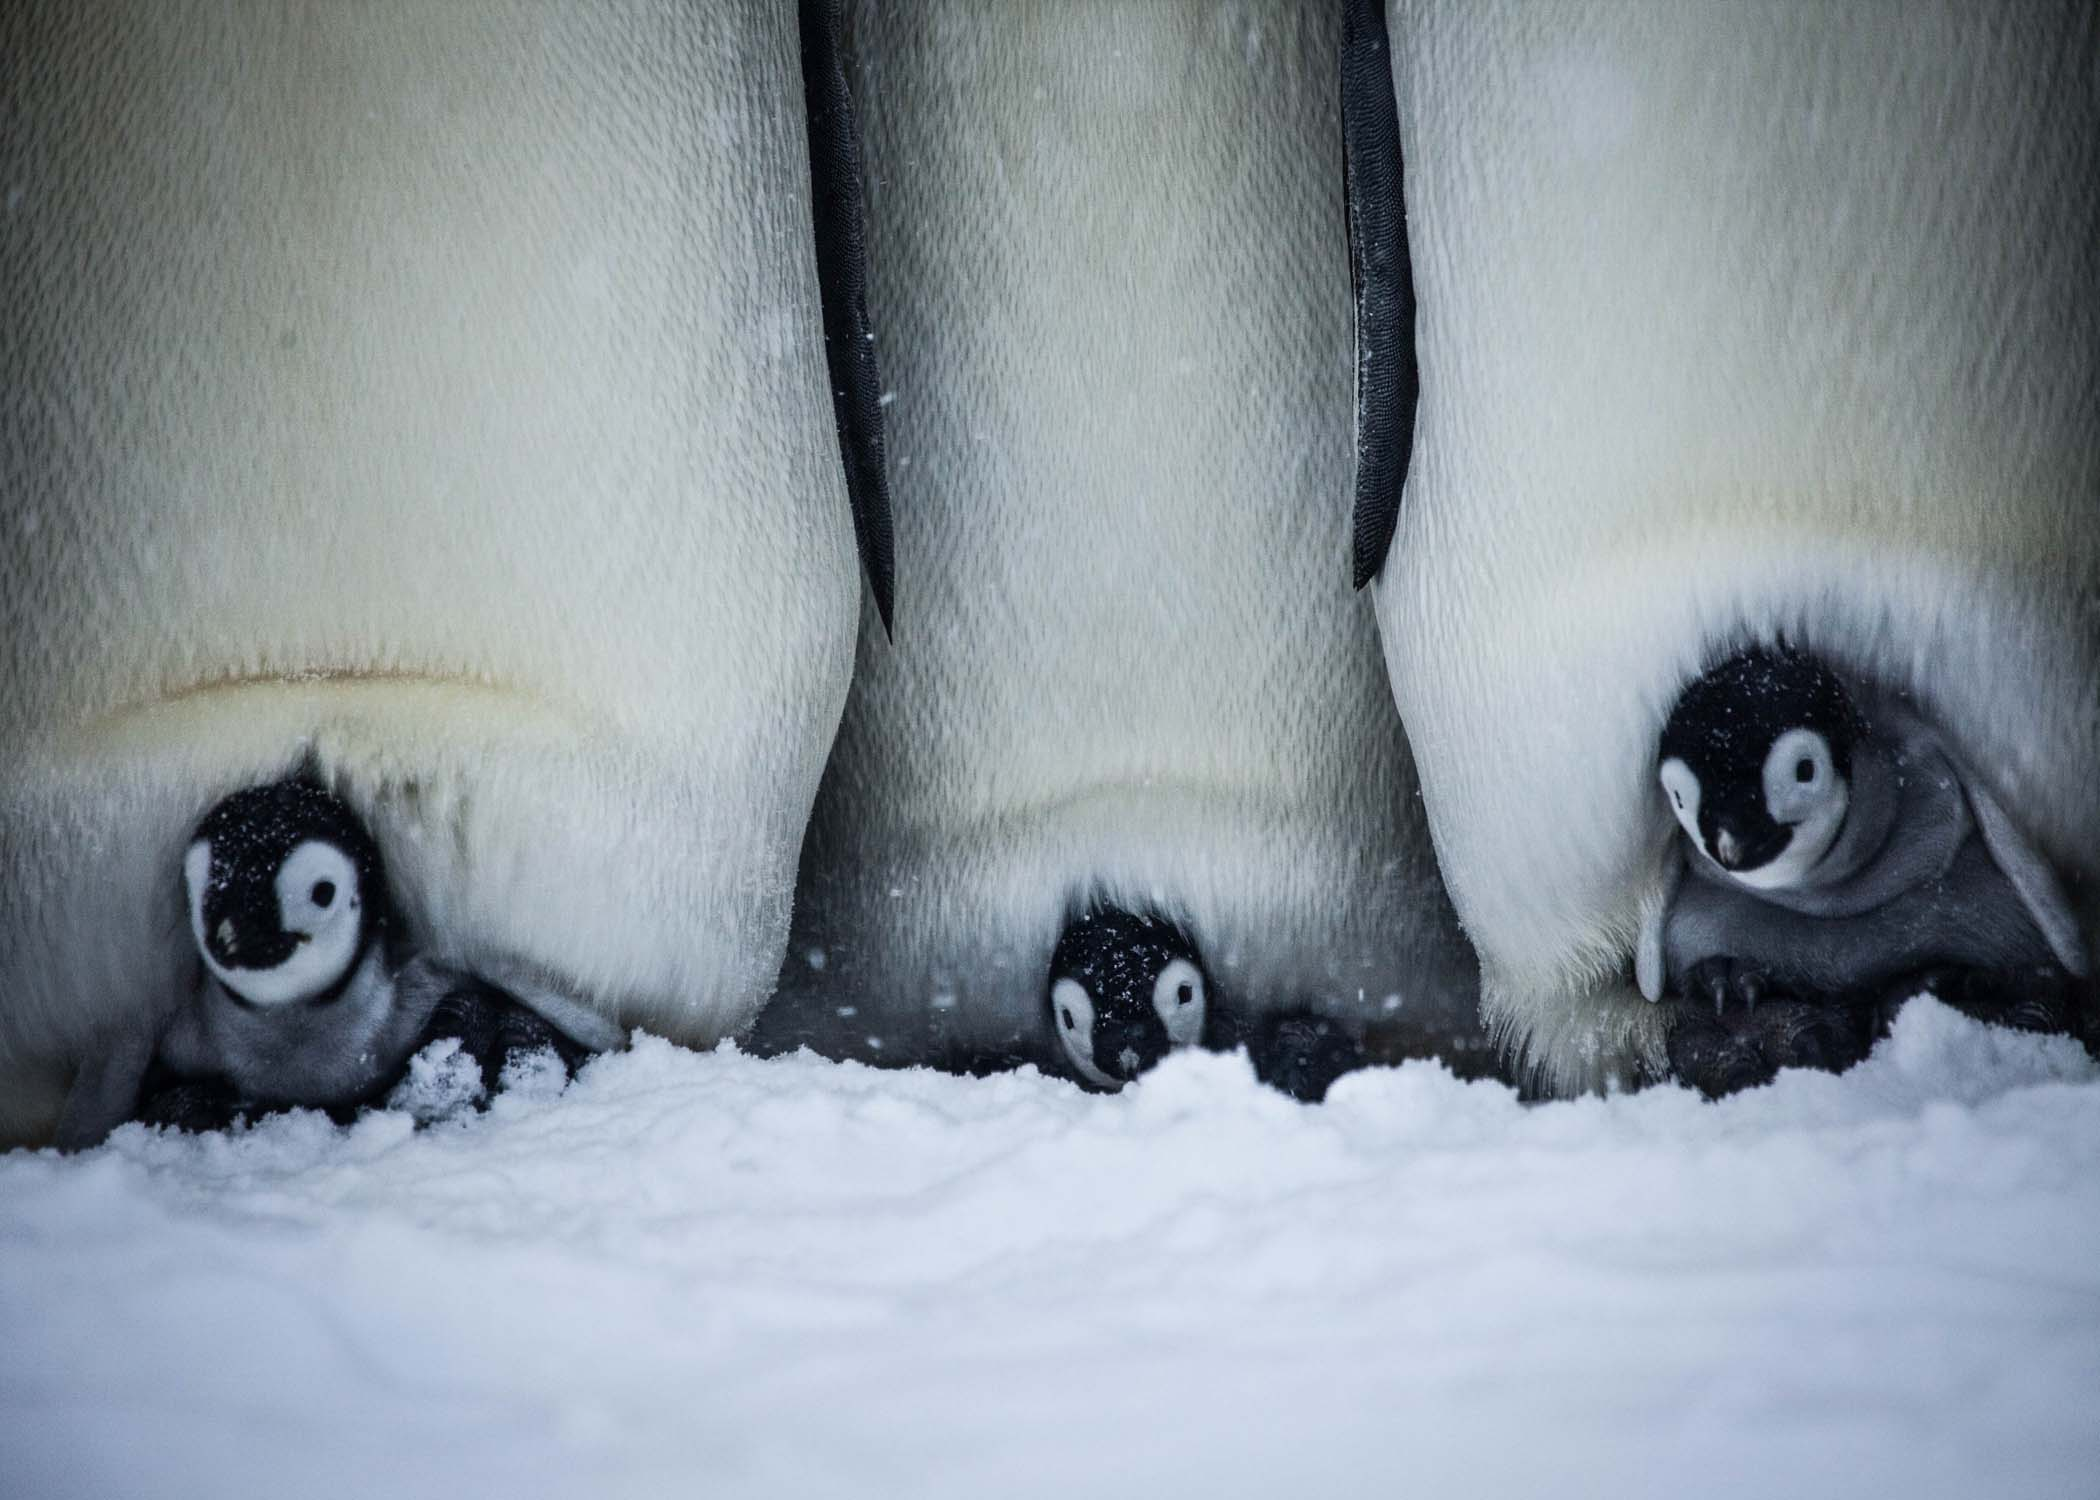 Three chicks on their parent's feet. (Photog Courtesy of Frederique Olivier/© John Downer Productions)